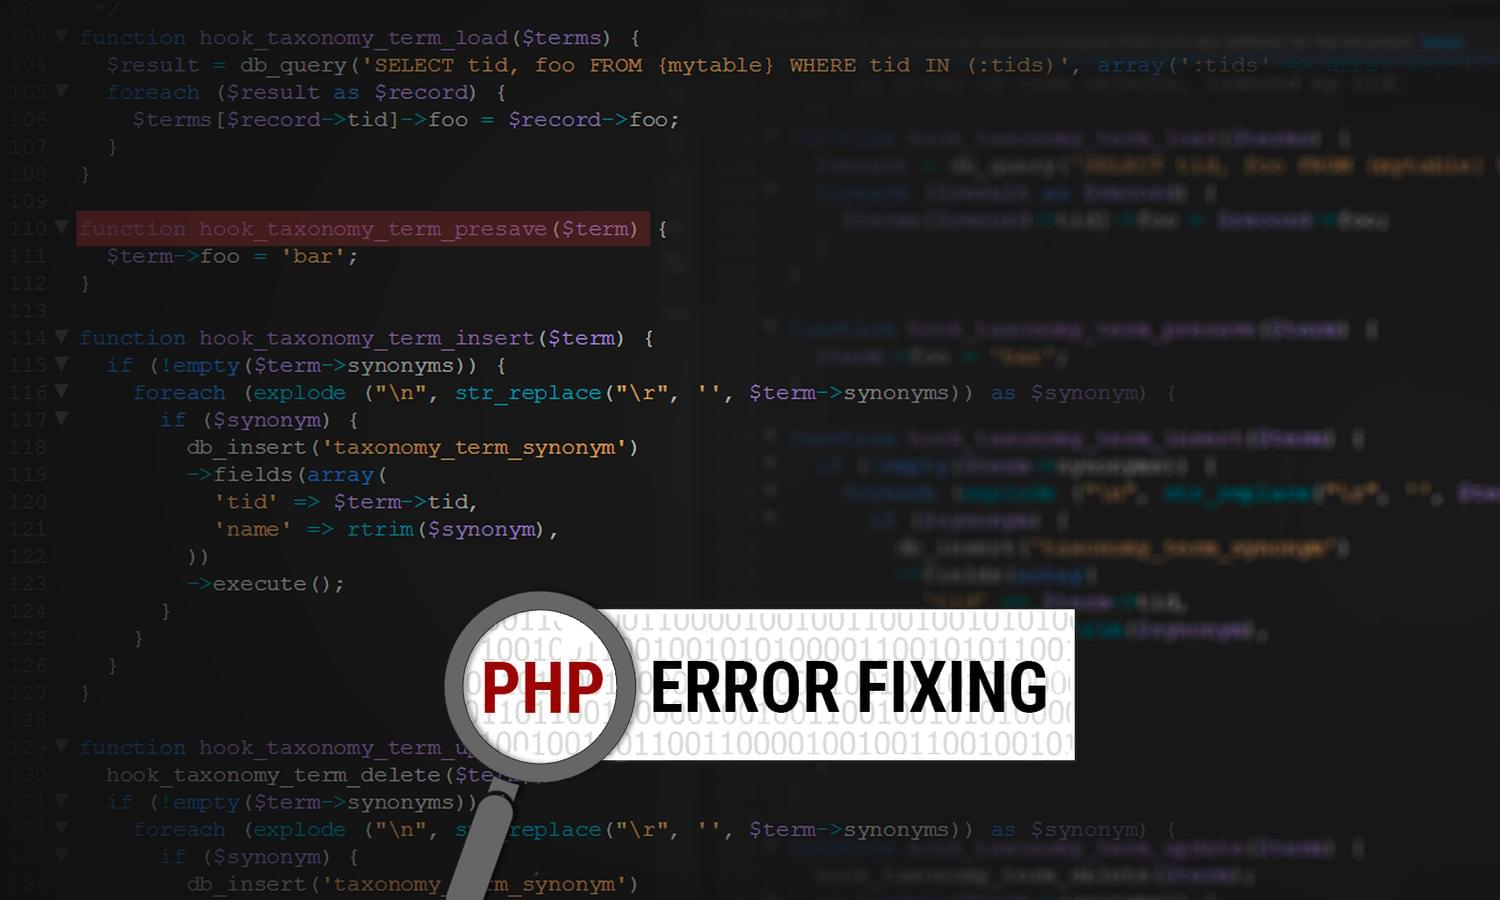 PHP Error Fixing  by madridnyc - 111547